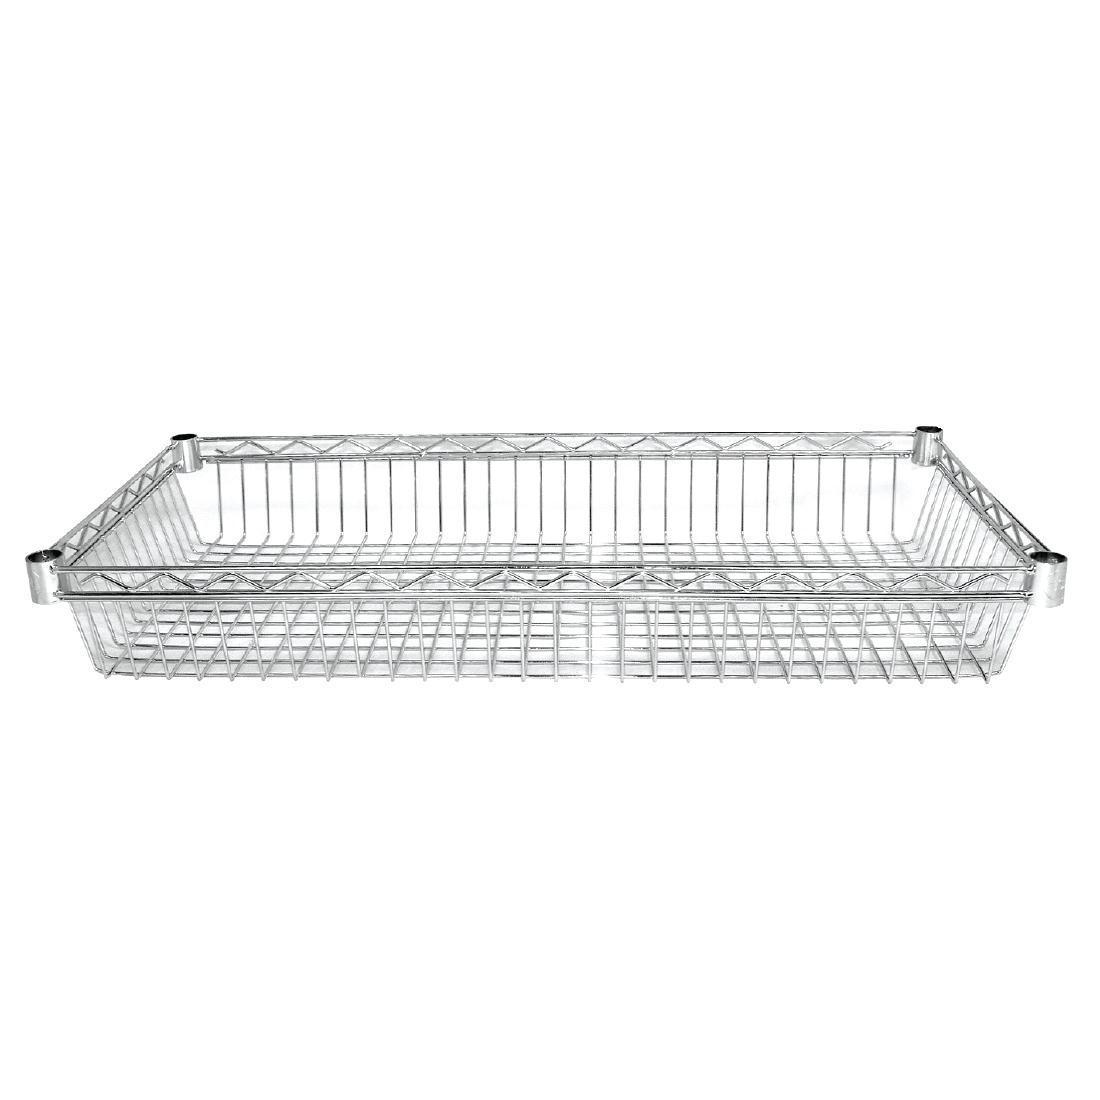 Vogue Chrome Baskets 1220mm Pack of 2 - Y496